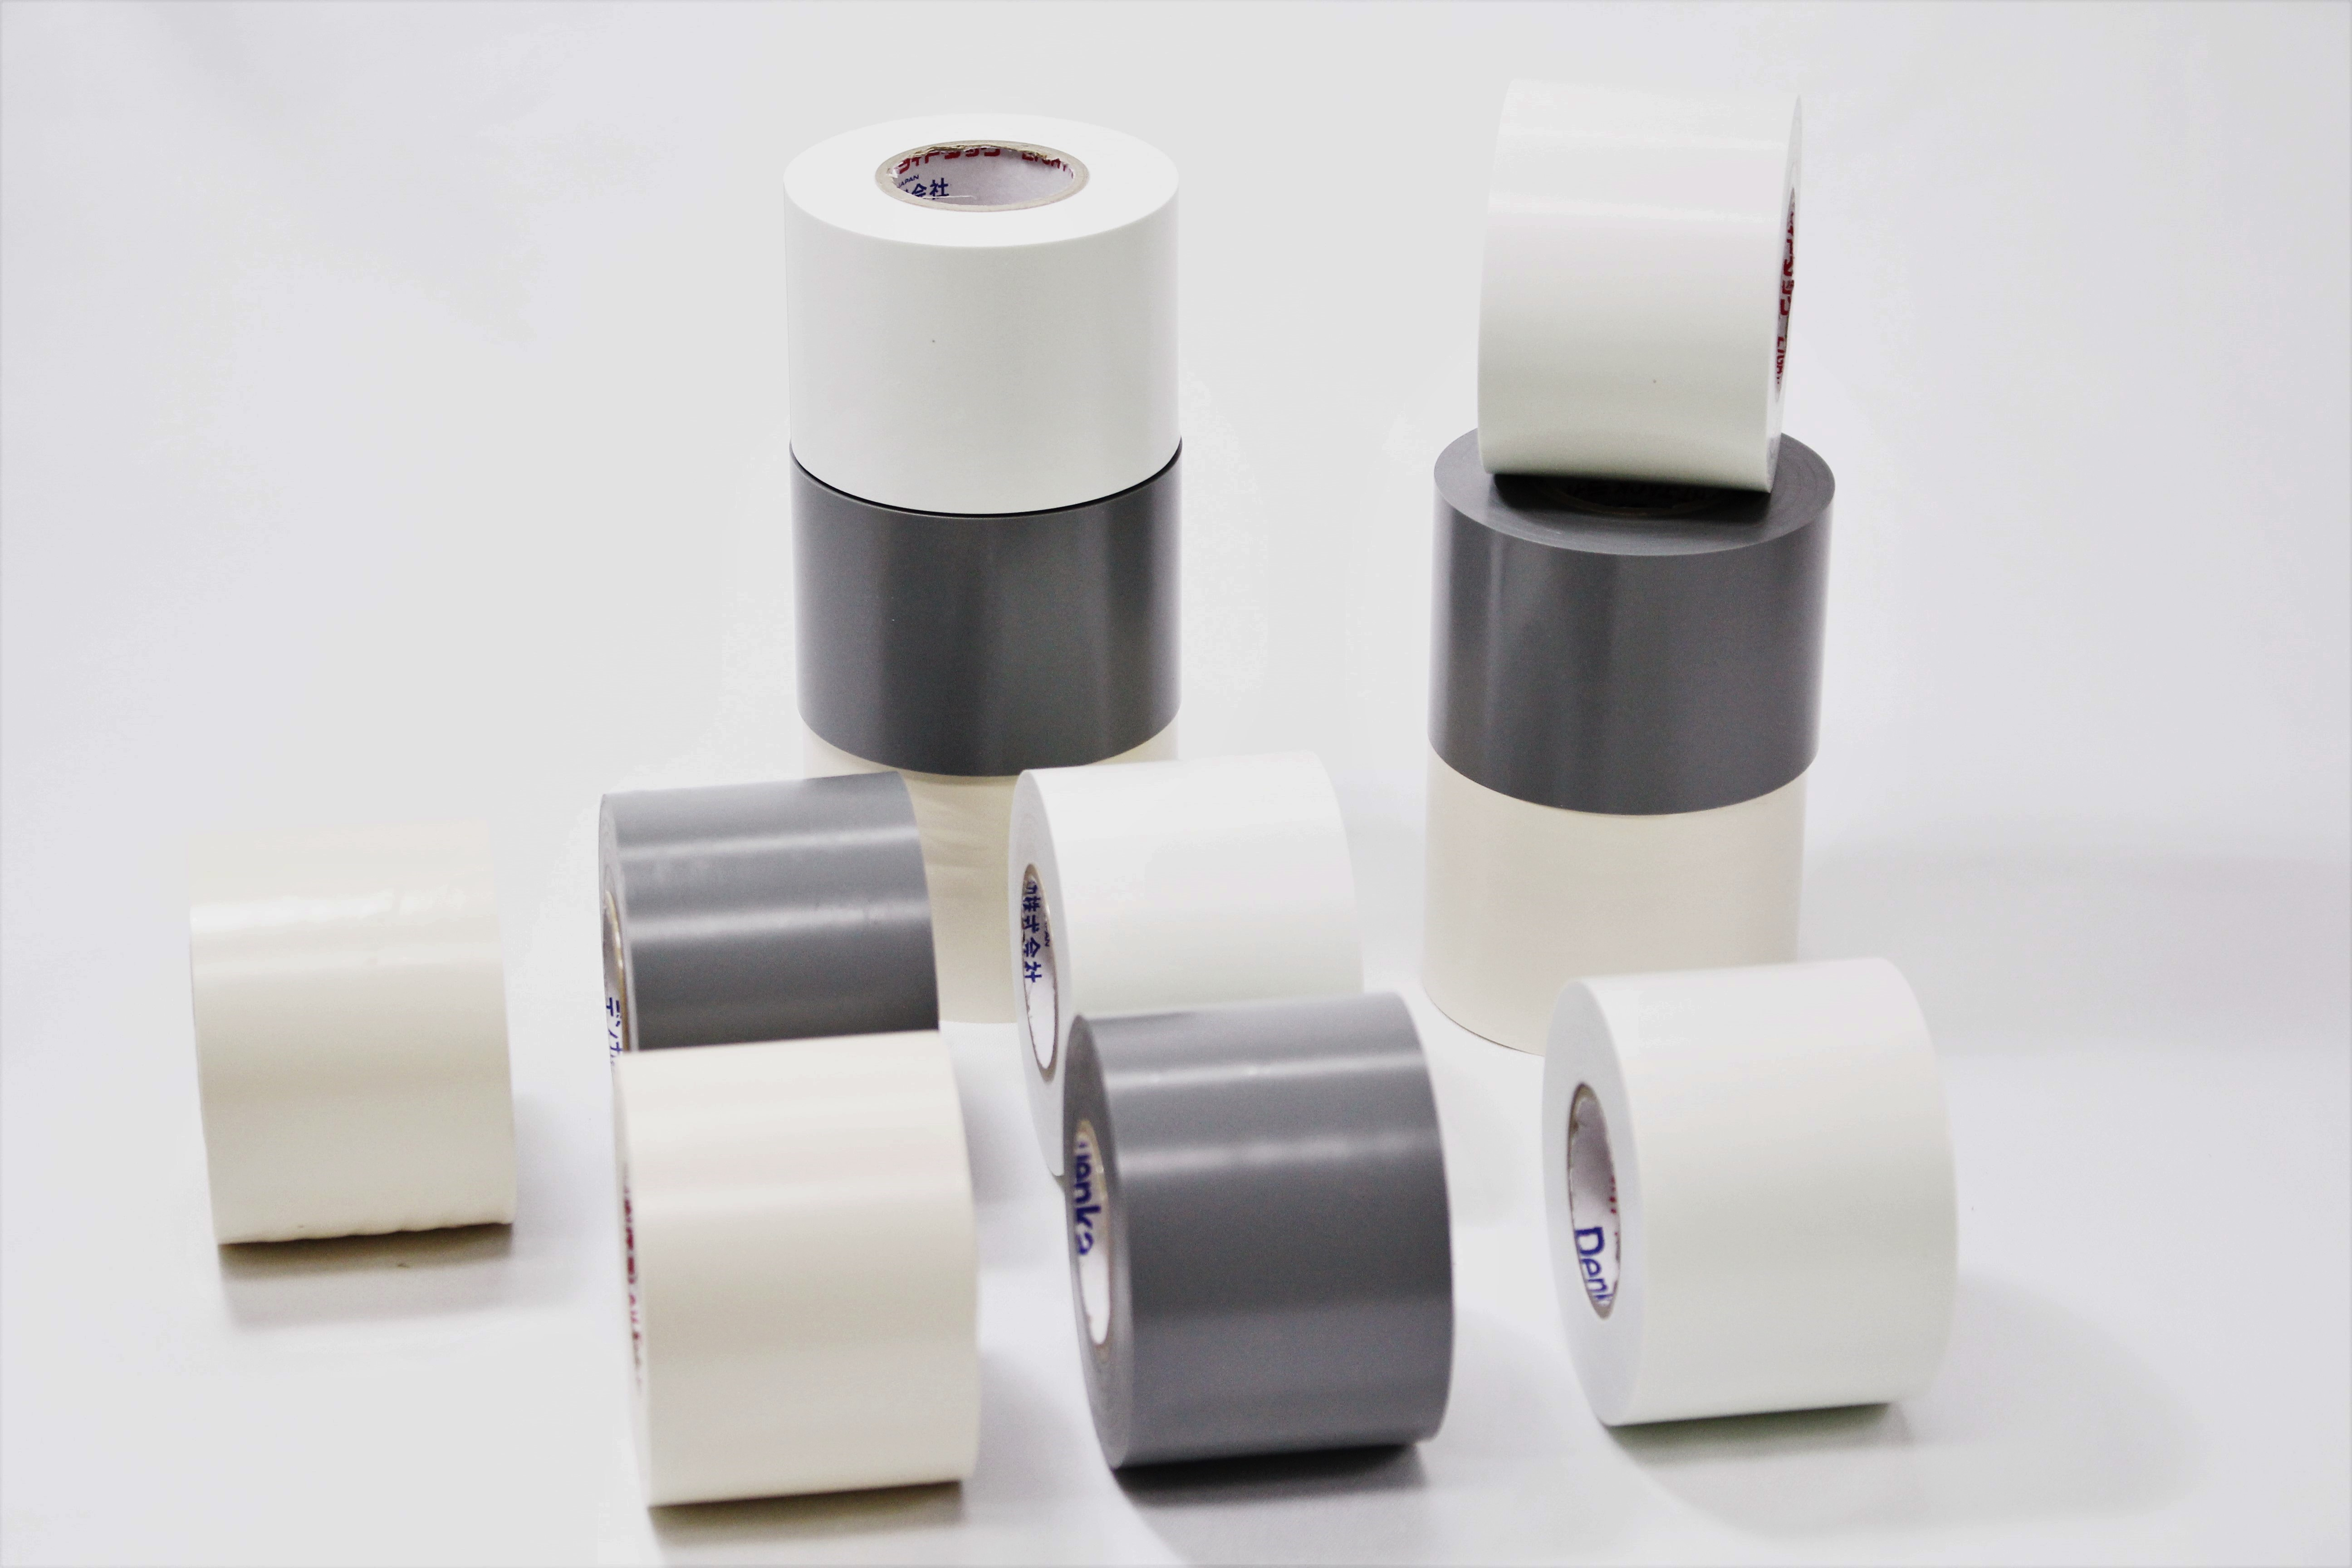 Vinyl tape for air conditioning ducts